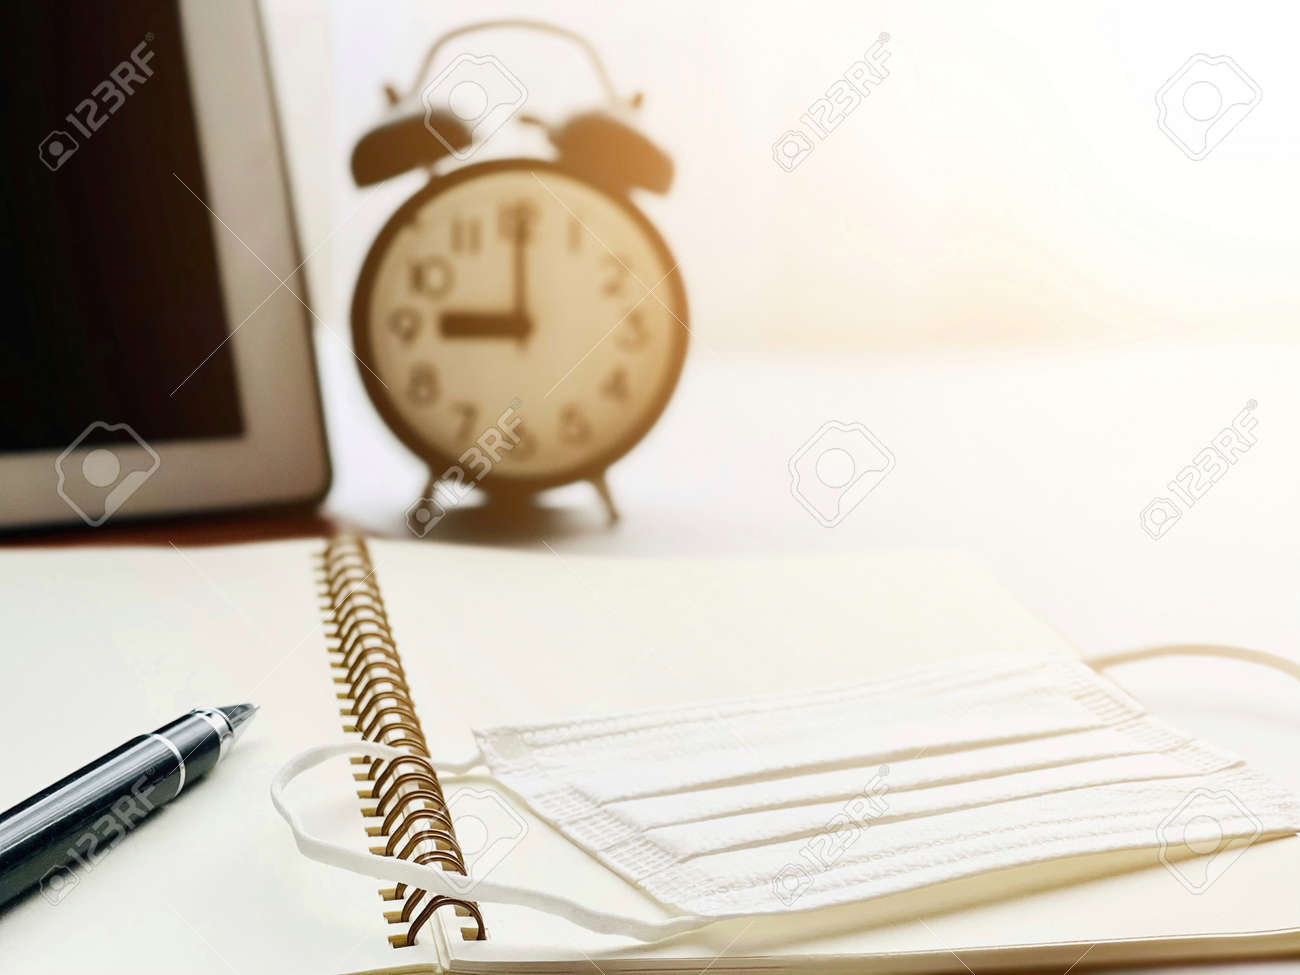 Anti virus protection mask on open notebook paper, digital tablet and clock on working desk table - 168796800